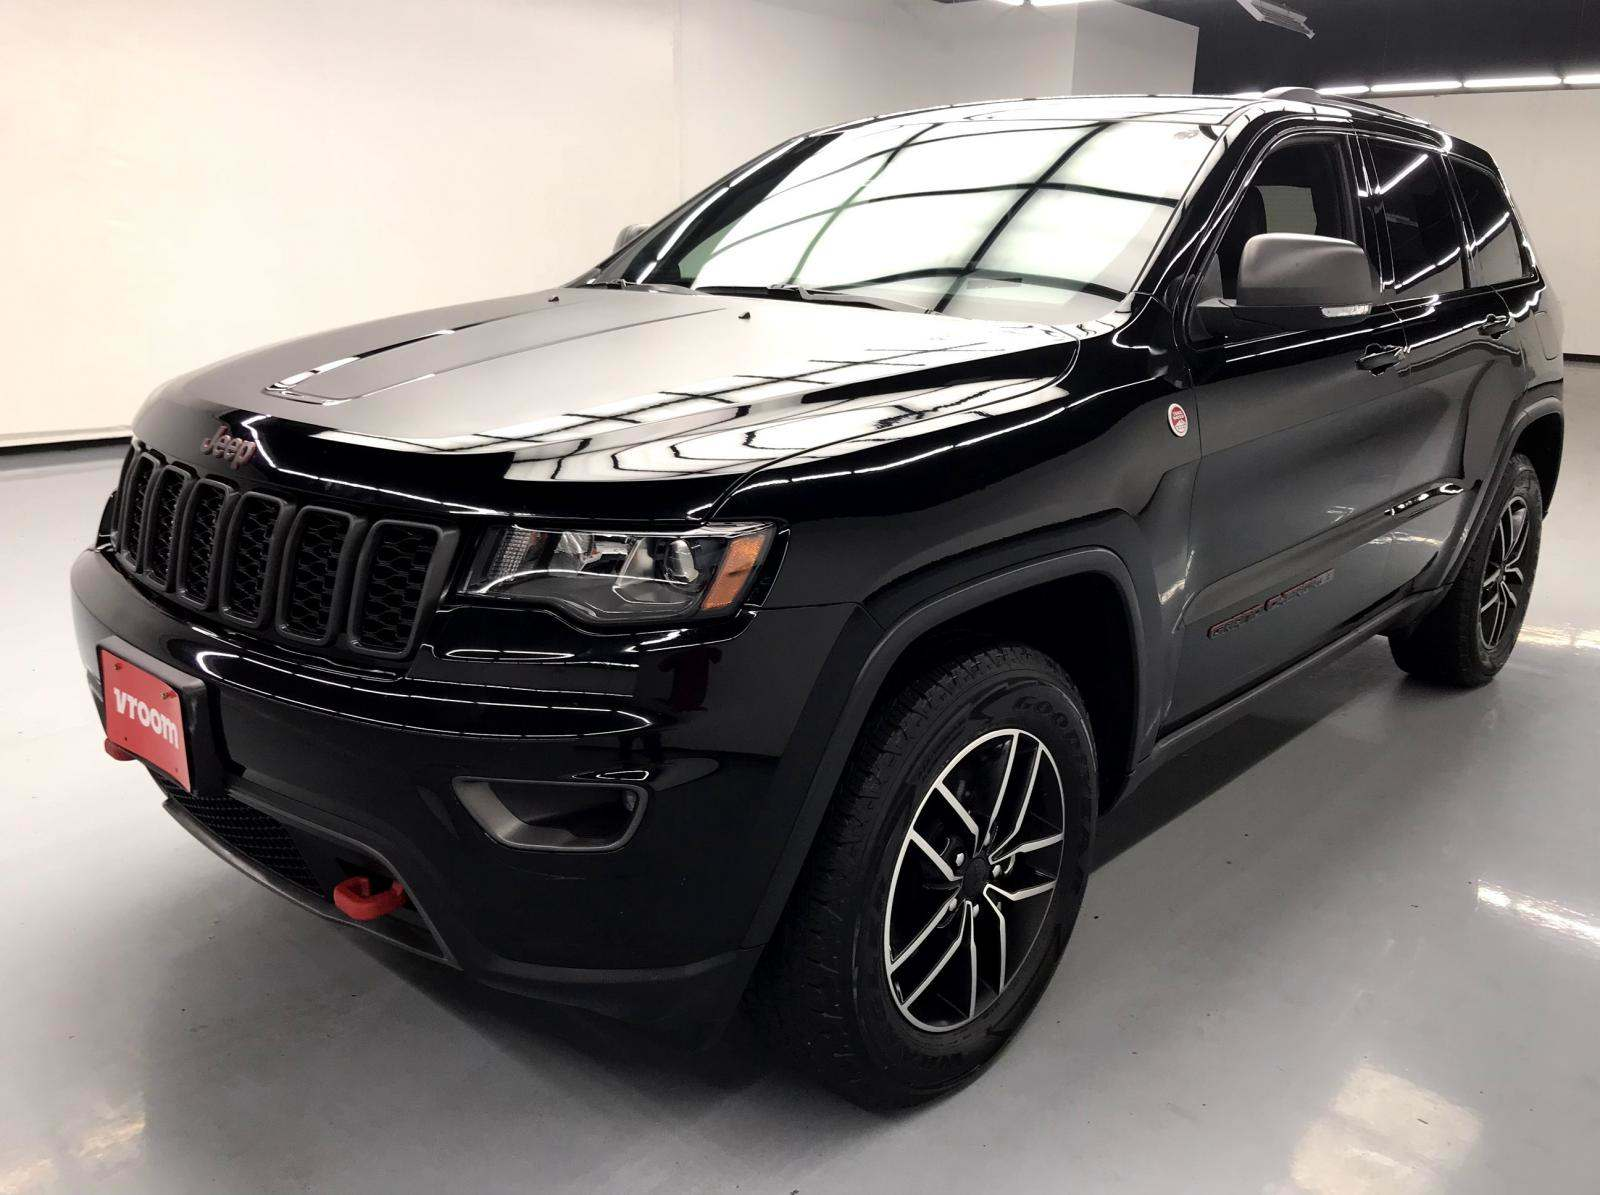 Jeep Grand Cherokee Trailhawk For Sale >> Used 2019 Jeep Grand Cherokee For Sale 33 960 Vroom